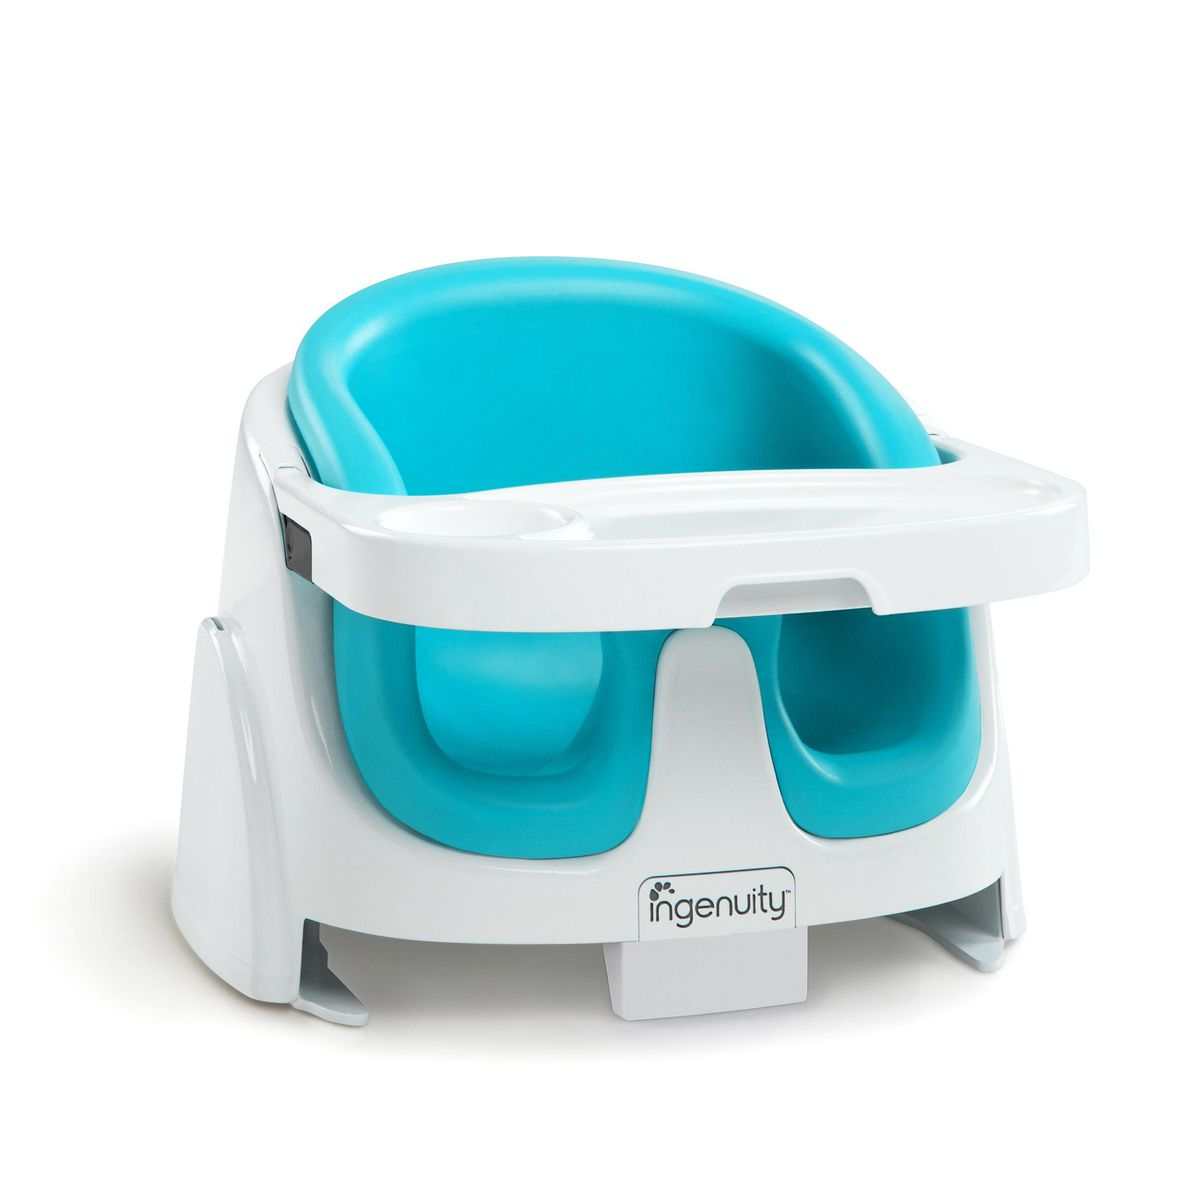 ingenuity baby base 2 in 1 booster seat aqua buy online in south africa. Black Bedroom Furniture Sets. Home Design Ideas